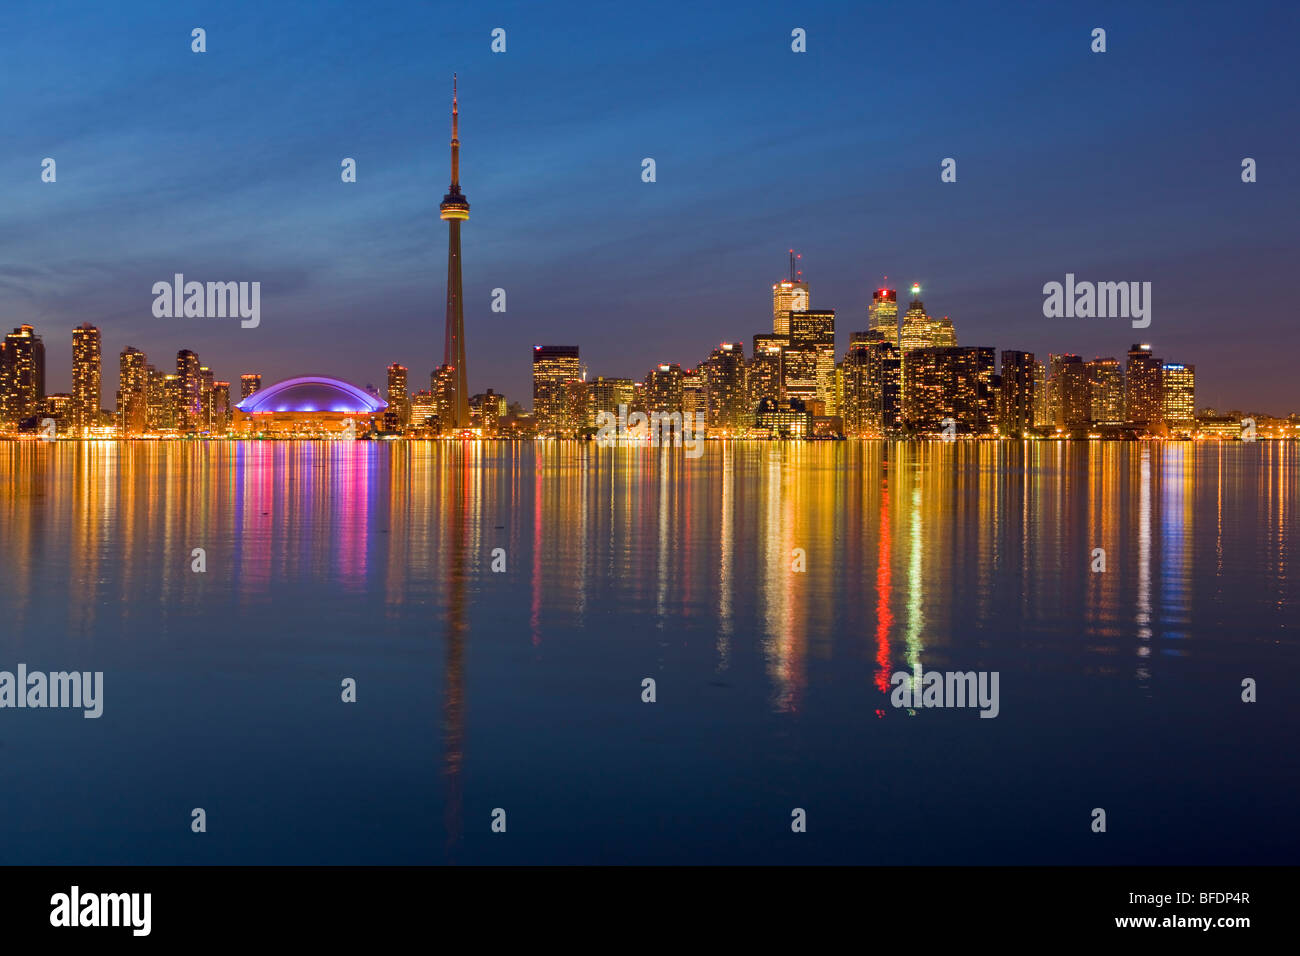 Toronto city skyline seen at dusk from Centre Island, Toronto Islands, Lake Ontario, Ontario, Canada - Stock Image